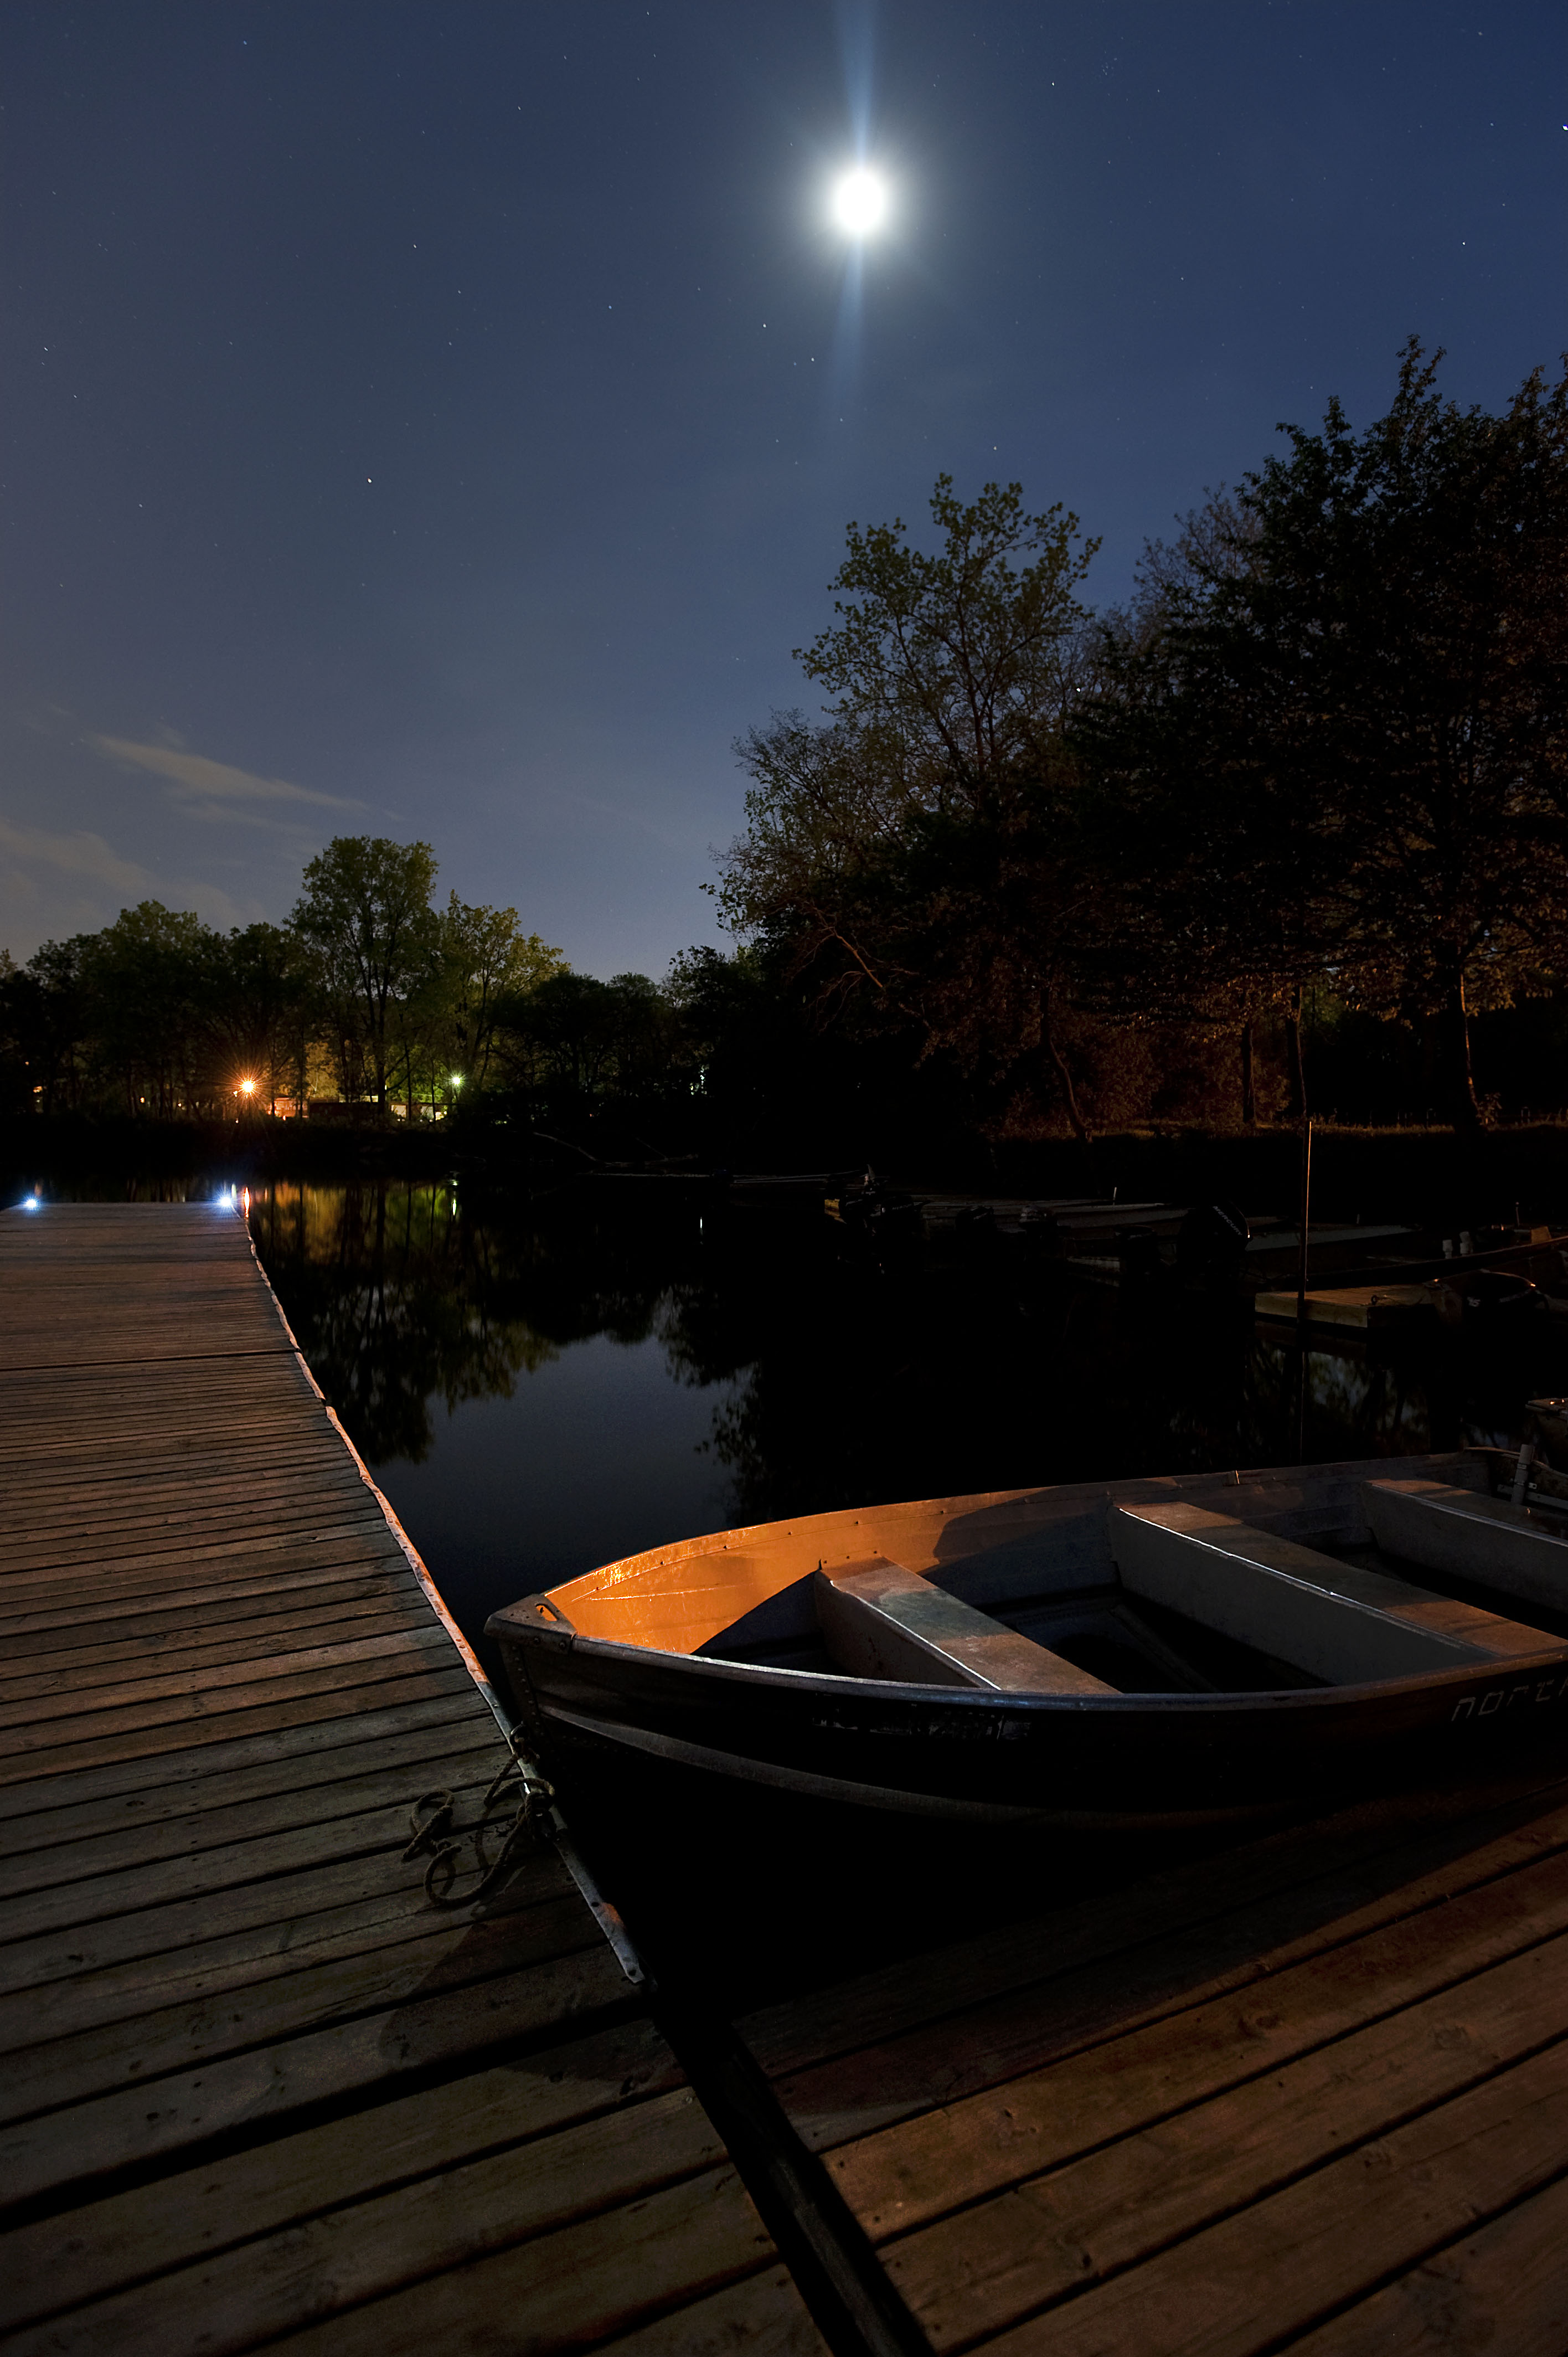 bandemer park under moonlight ann arbor photographer. Black Bedroom Furniture Sets. Home Design Ideas